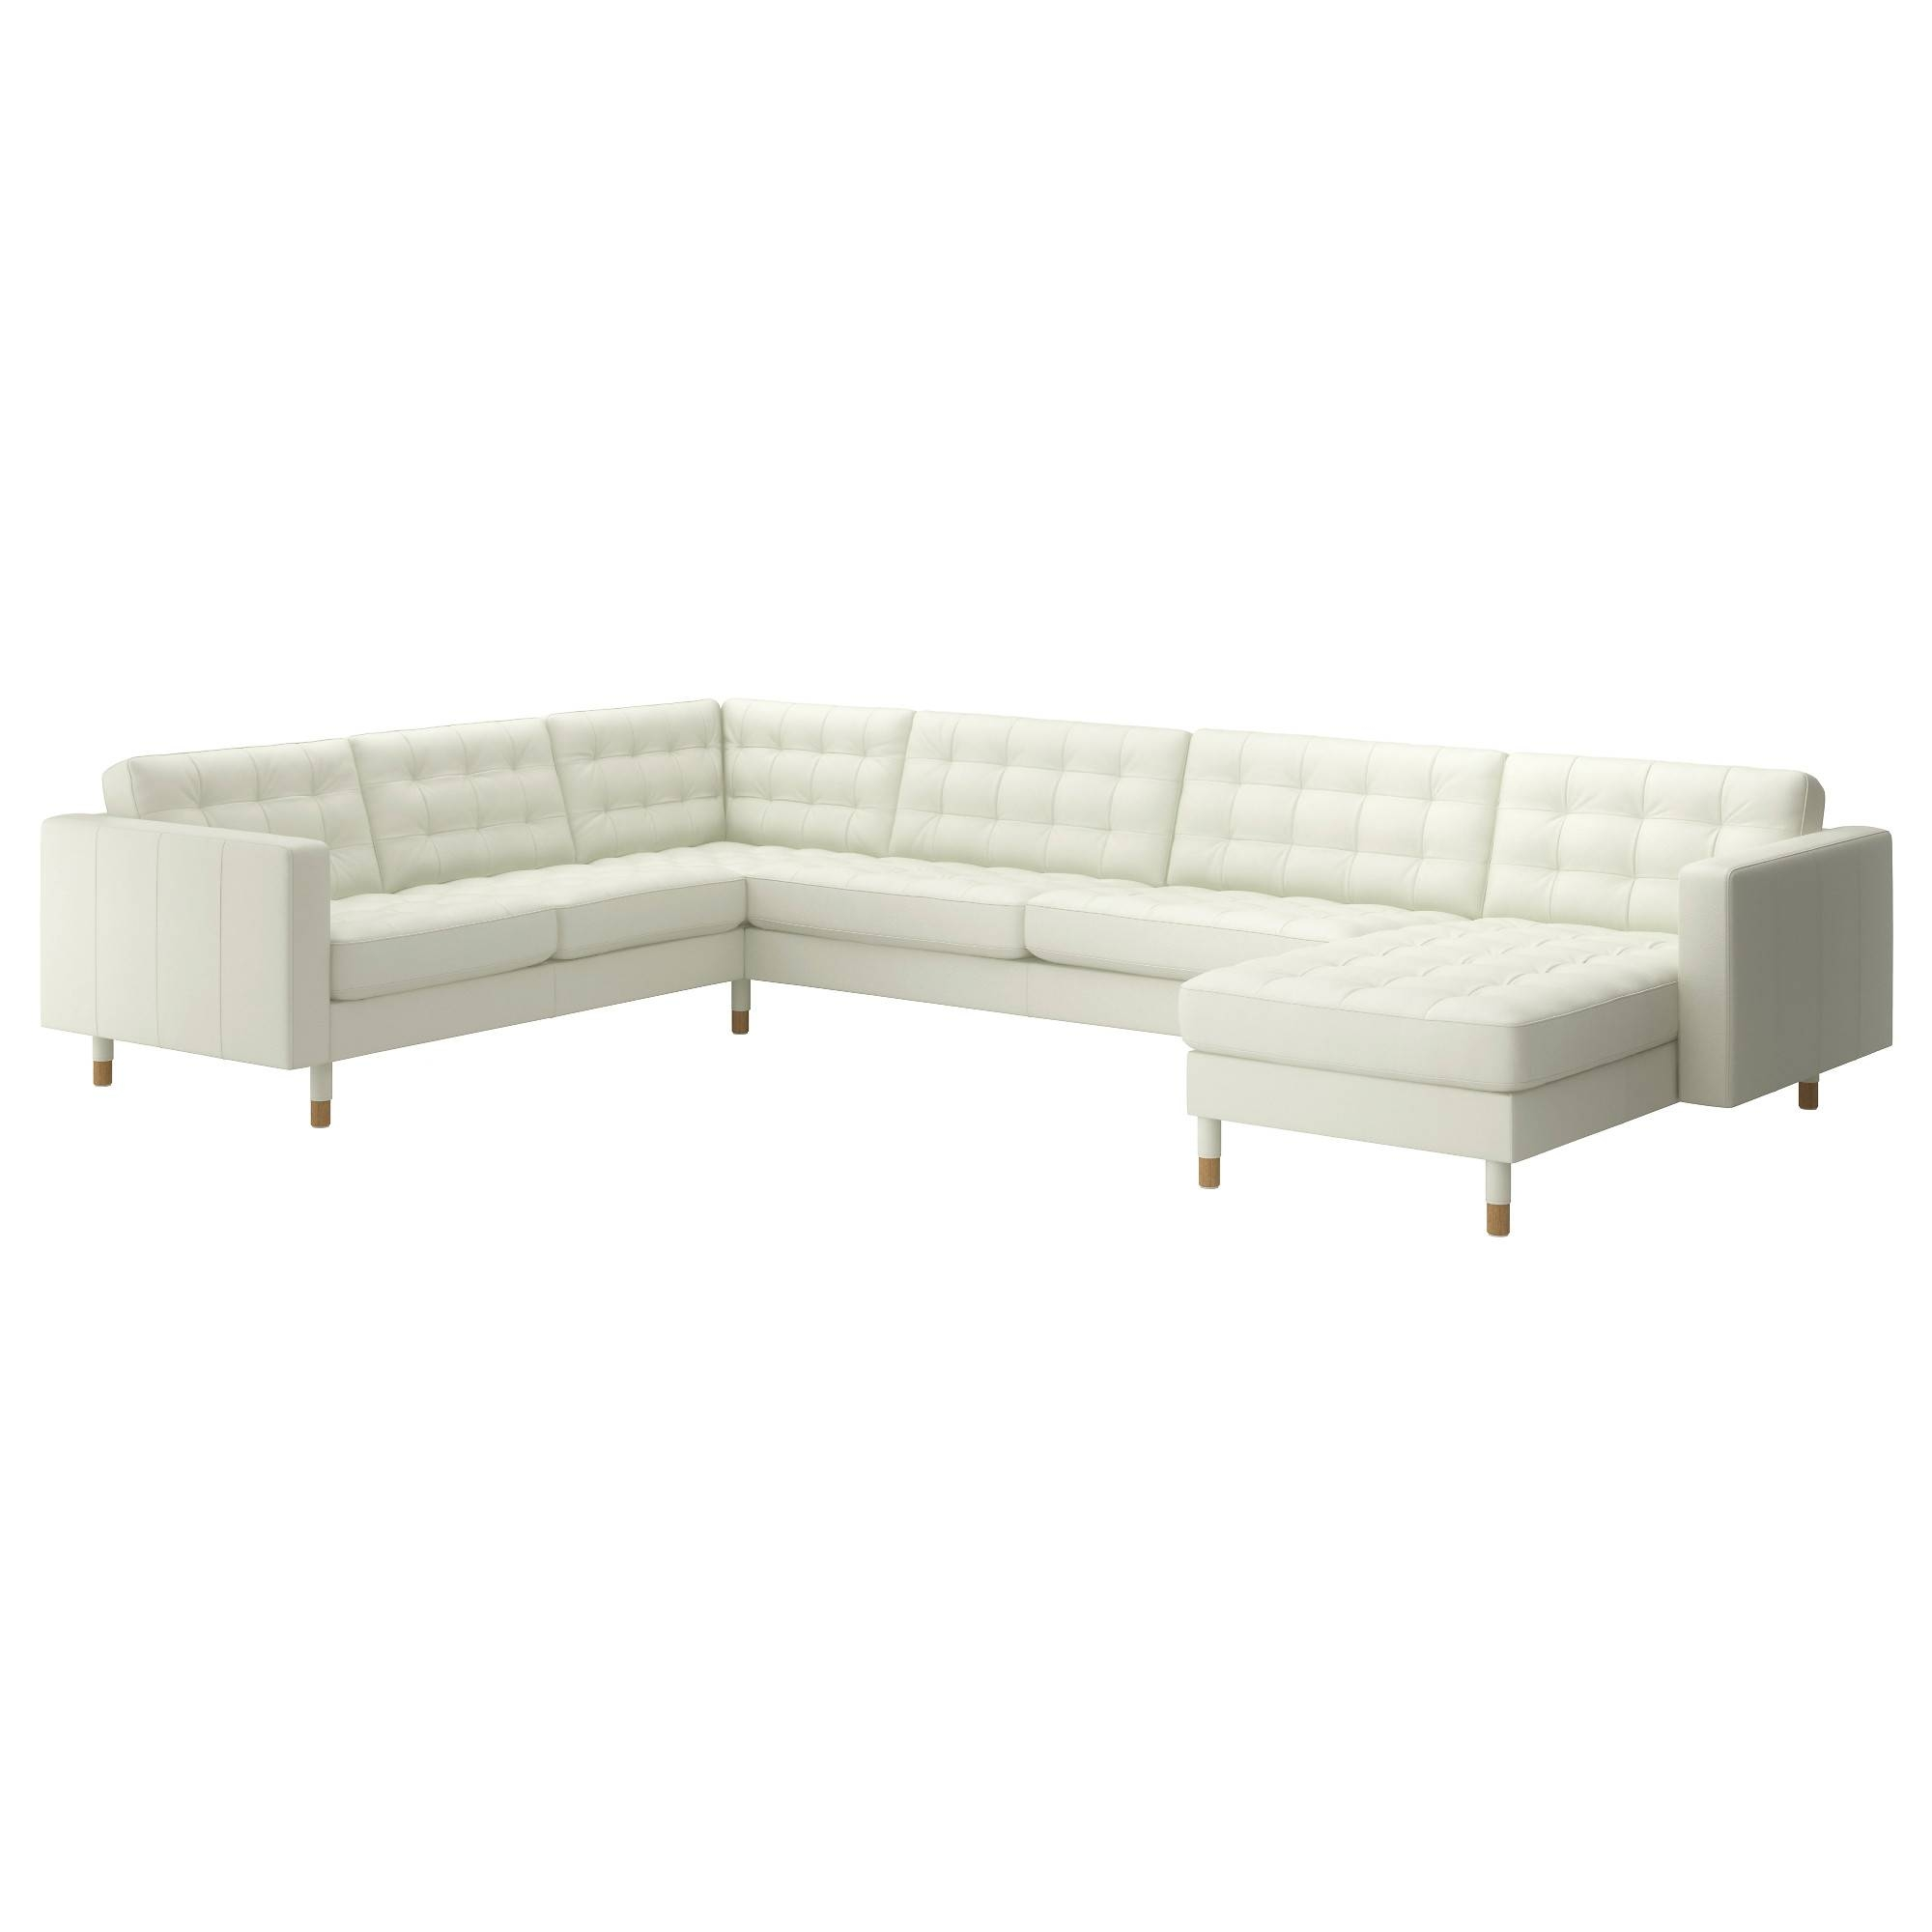 Leather & Faux Leather Couches, Chairs & Ottomans - Ikea regarding White Sofa Chairs (Image 15 of 30)